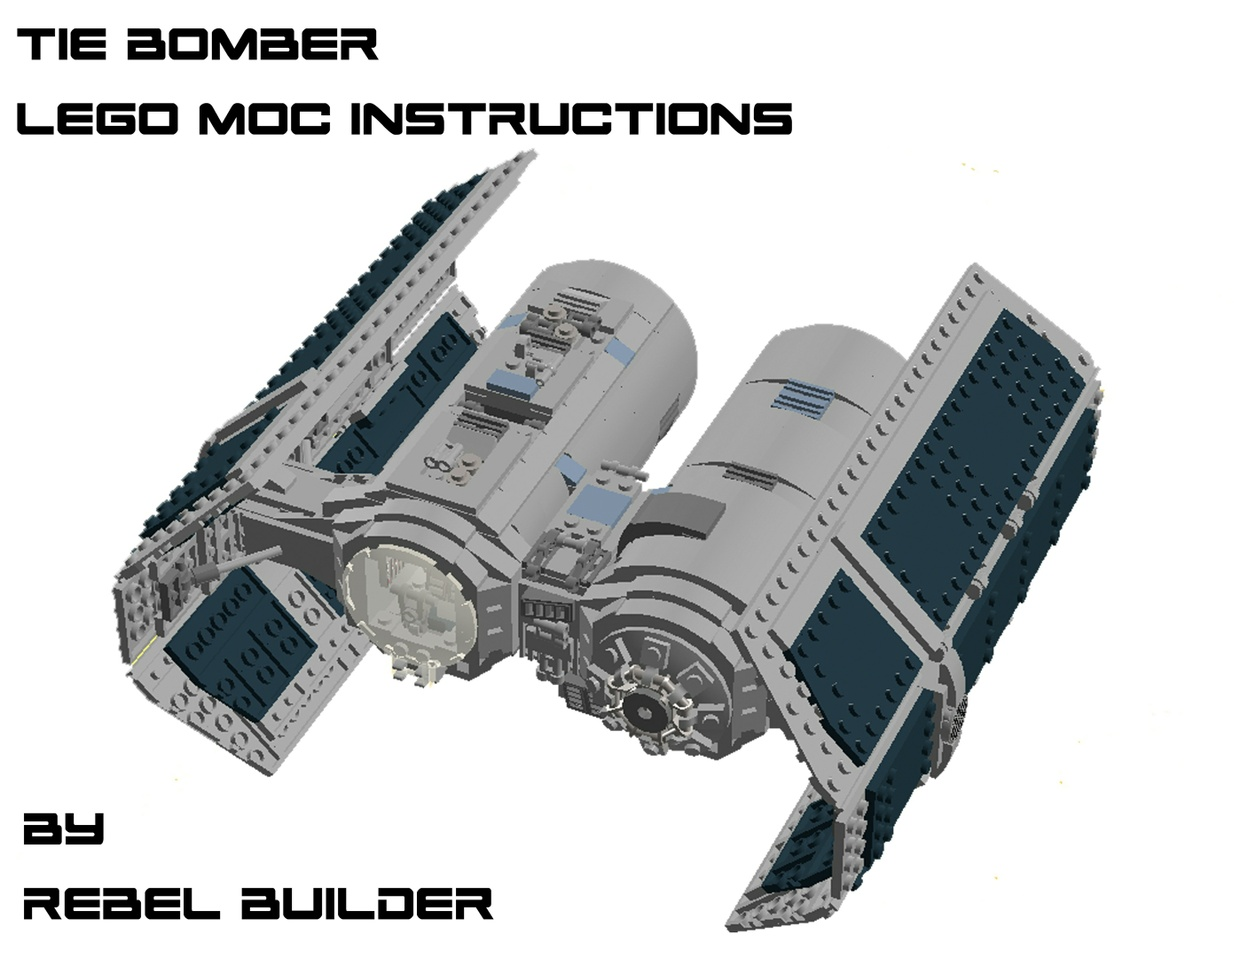 LEGO TIE Bomber MOC Instructions